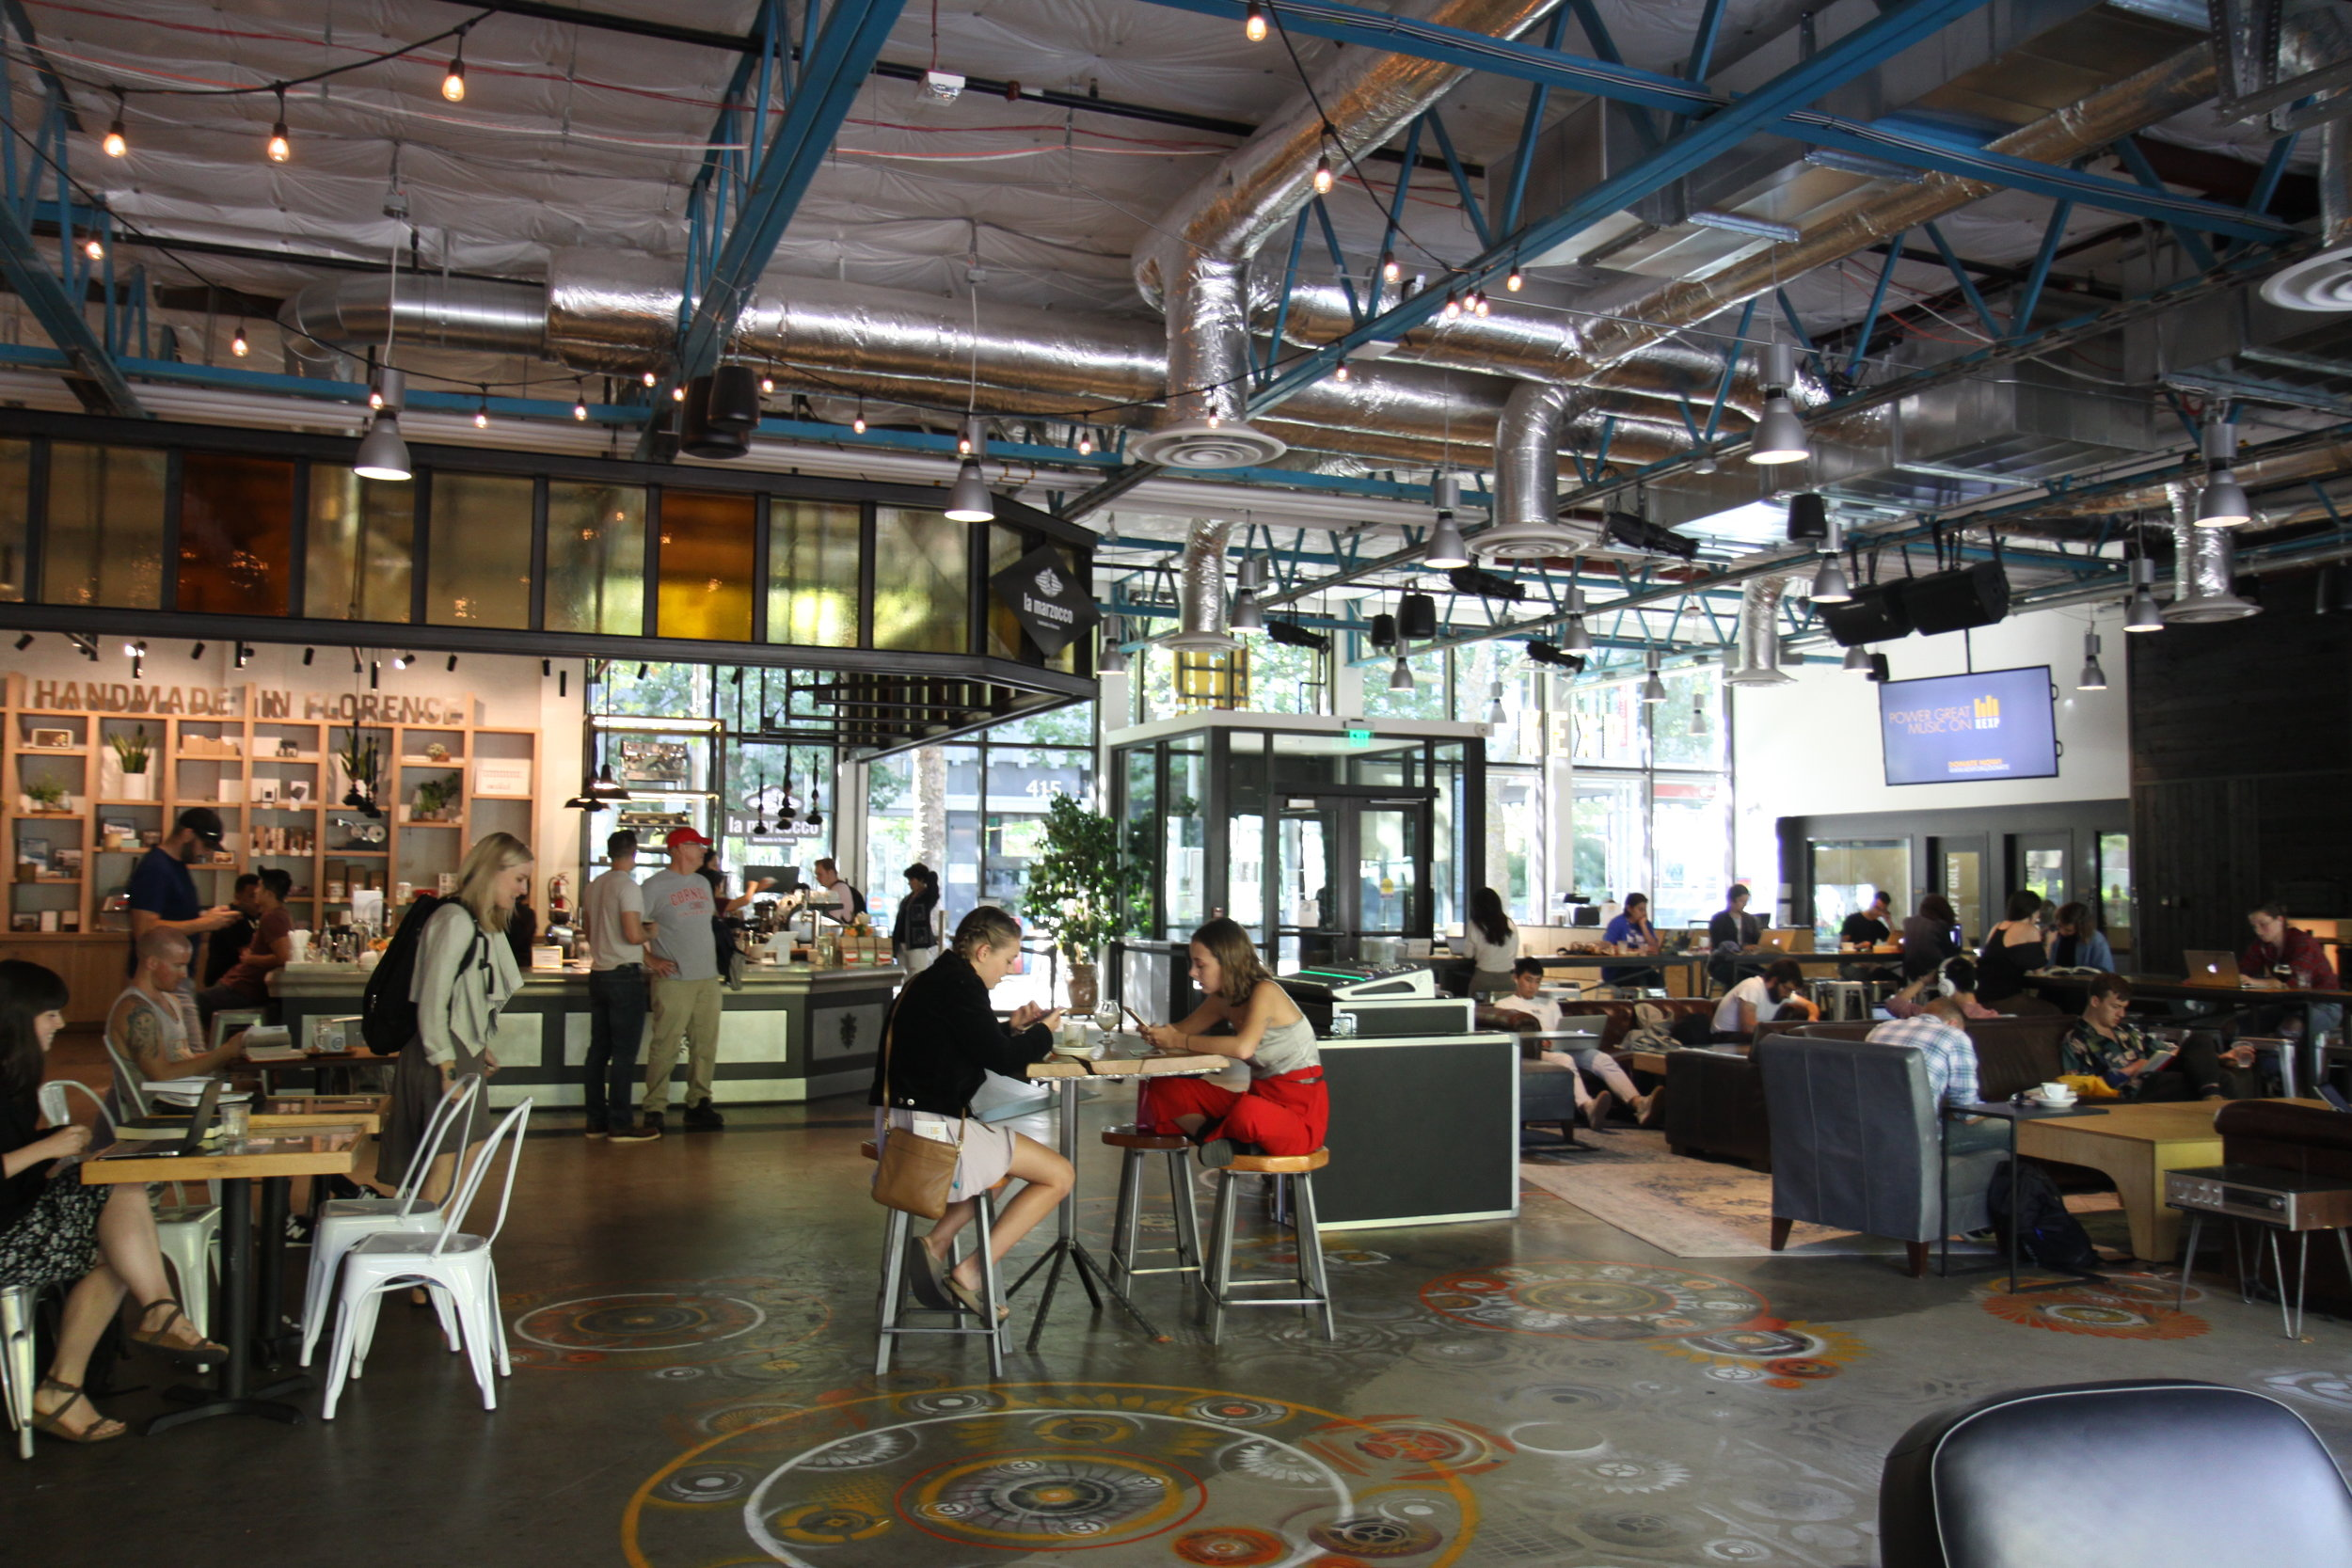 The kexp gathering space is a three-minute walk from The Downtown School.